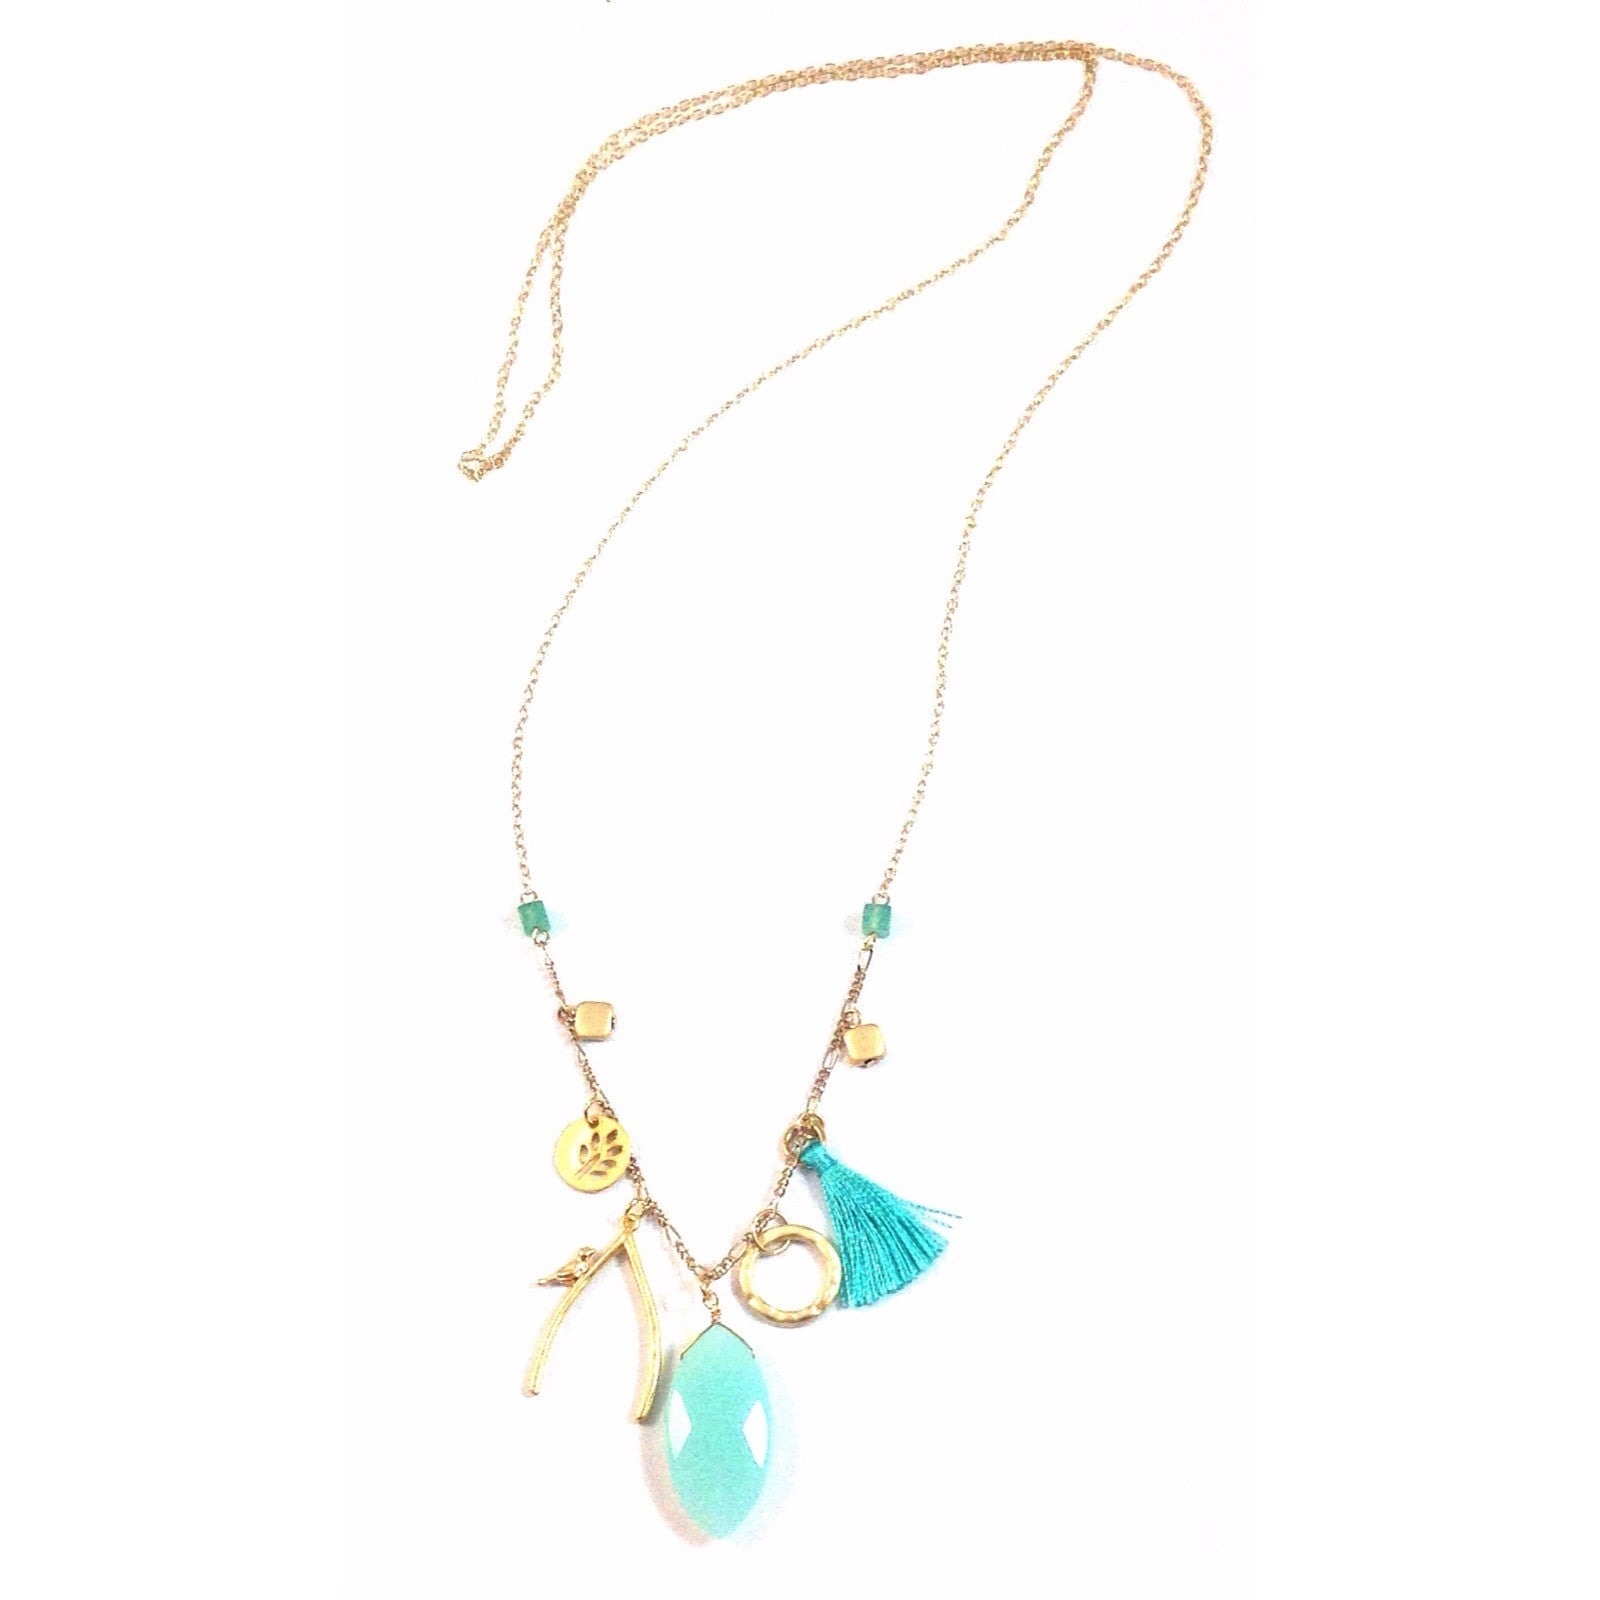 Chalcedony Charm & Tassel Necklace, $21 | Gold Chain | Light Years Jewelry